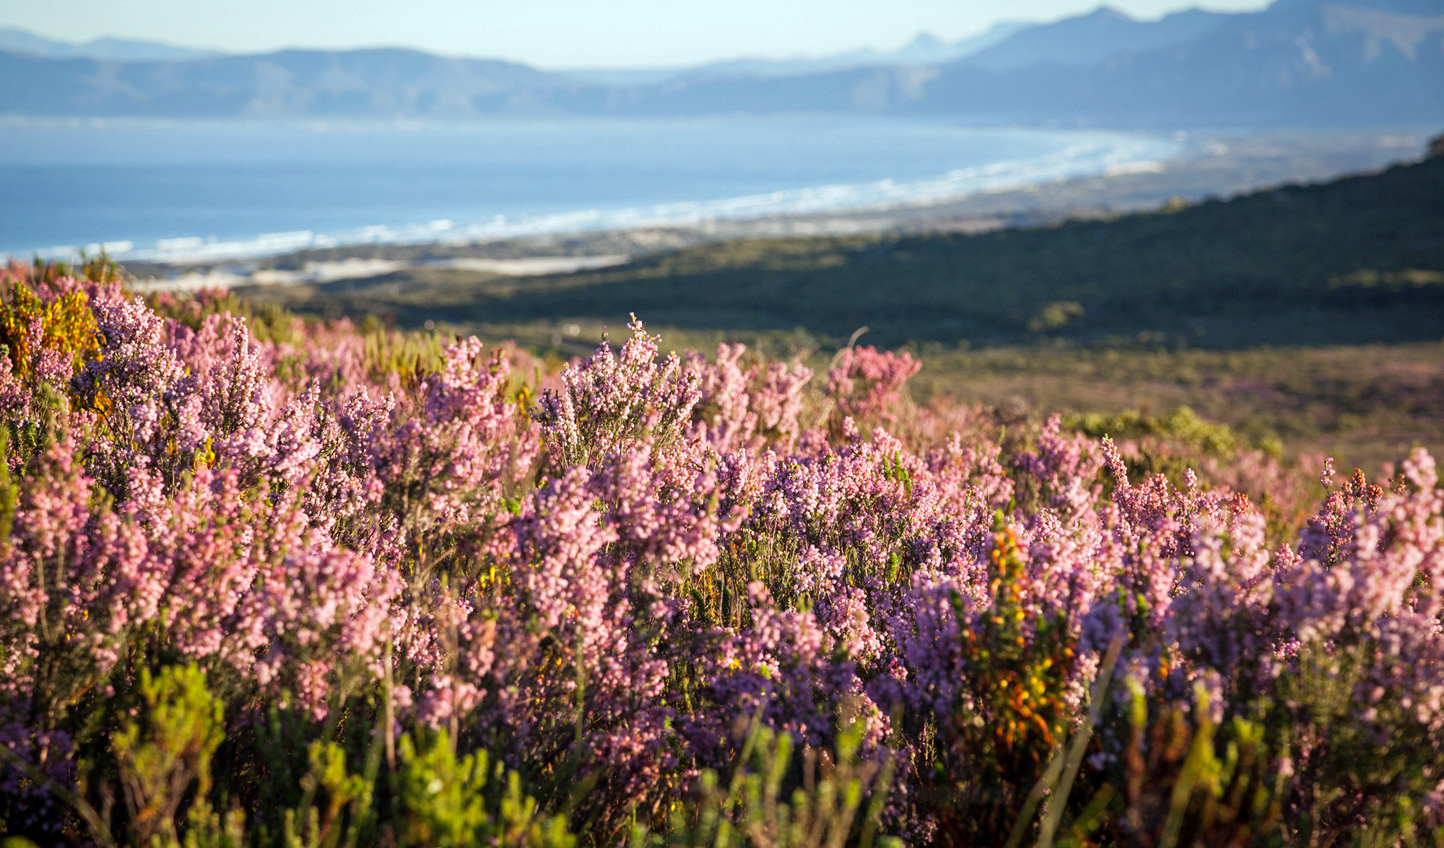 Head out on a flora safari and discover an abundance of wildflowers